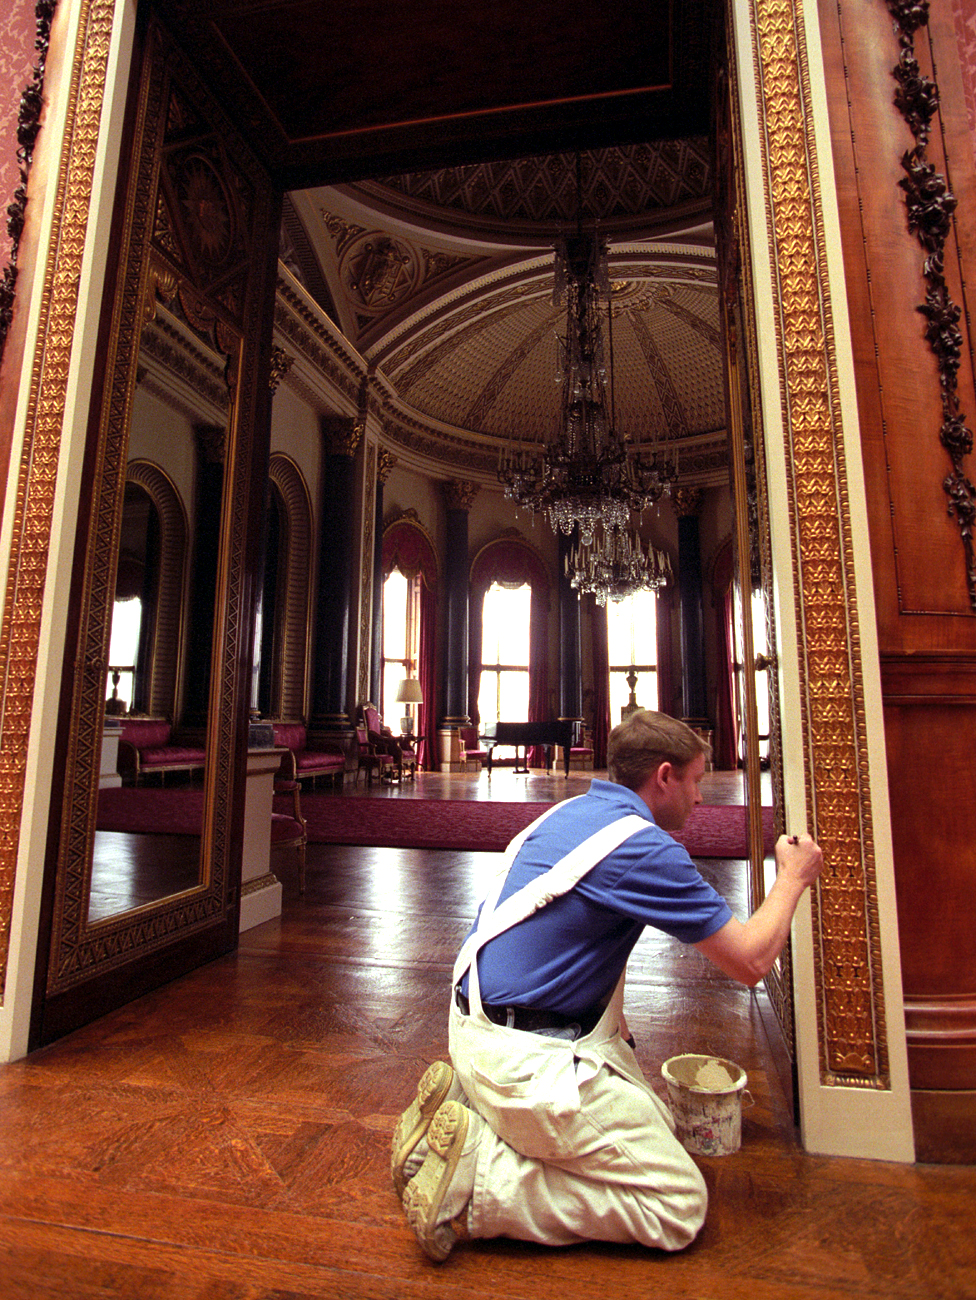 Finishing touches ahead of the opening of the state rooms in 1998